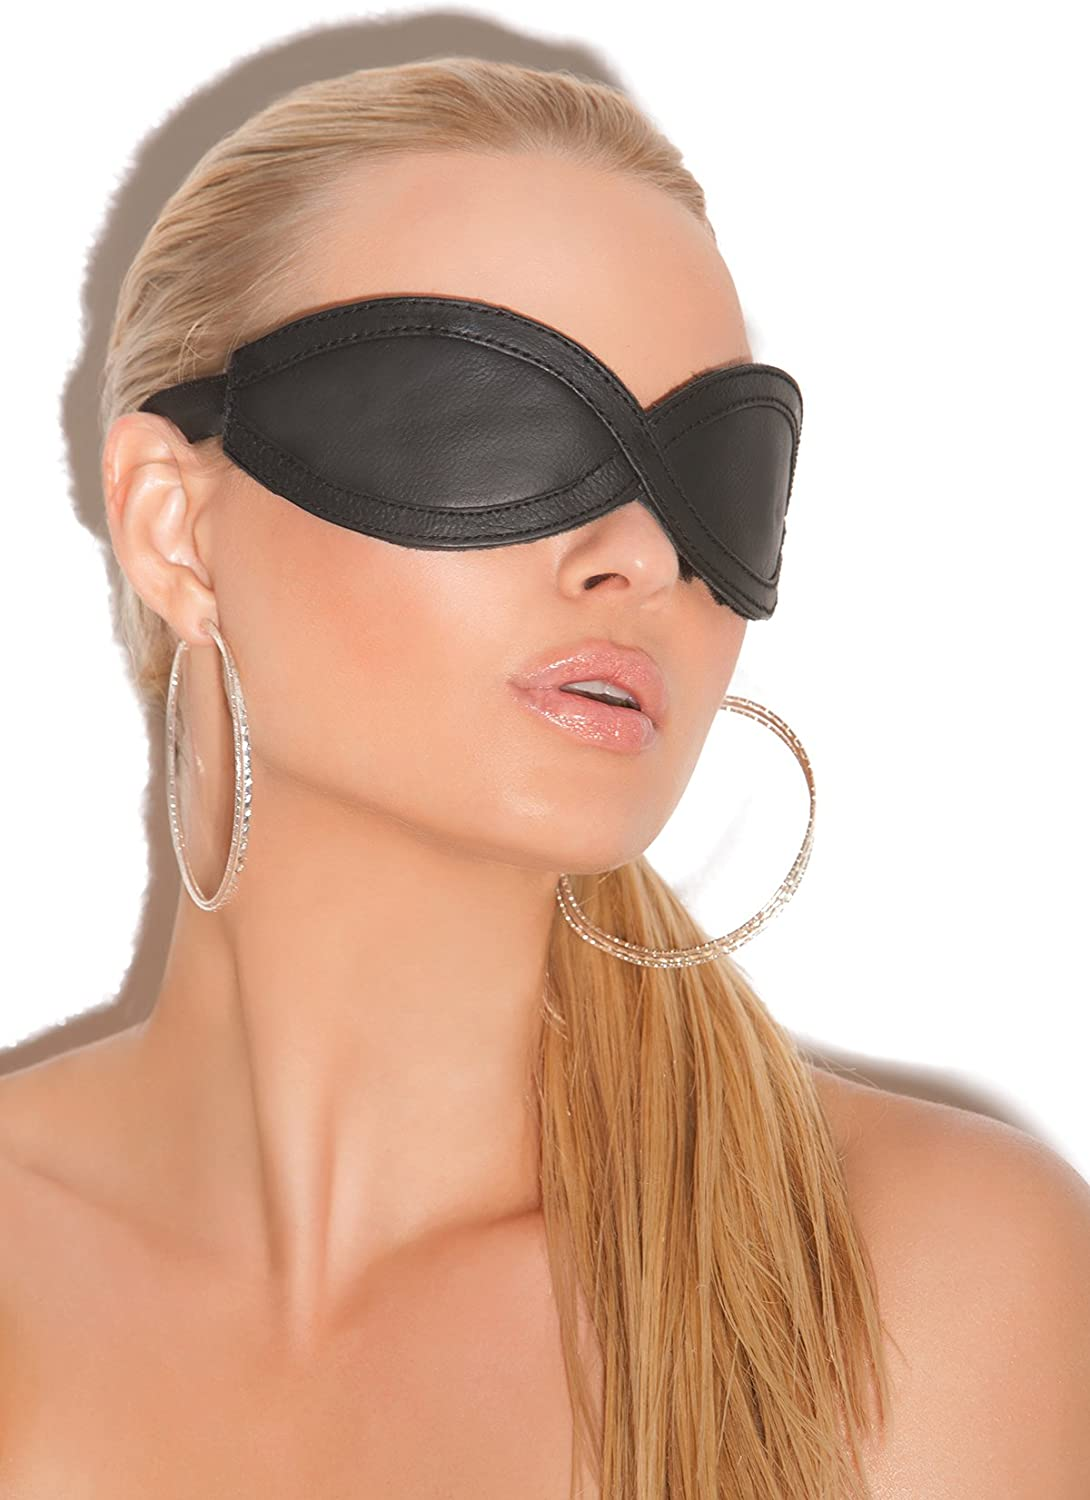 Leather Blindfold Mask Adult Play Black Accessory Spasm price Max 68% OFF Role